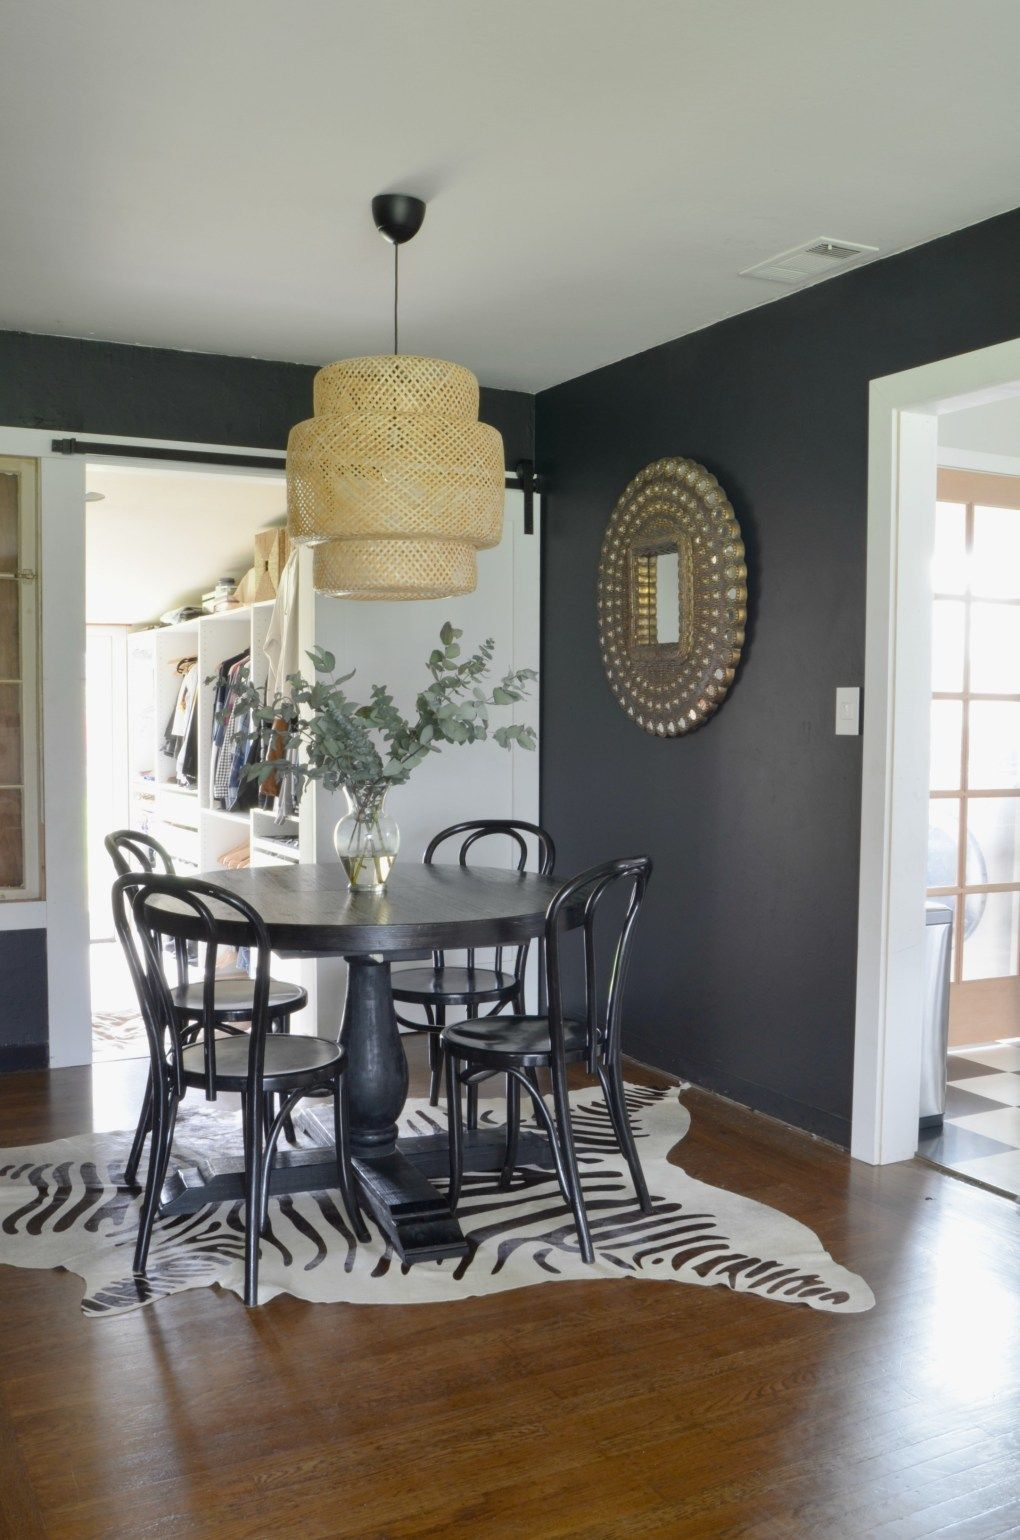 The Evolution Of thecottagebungalow Dining Room Makeover